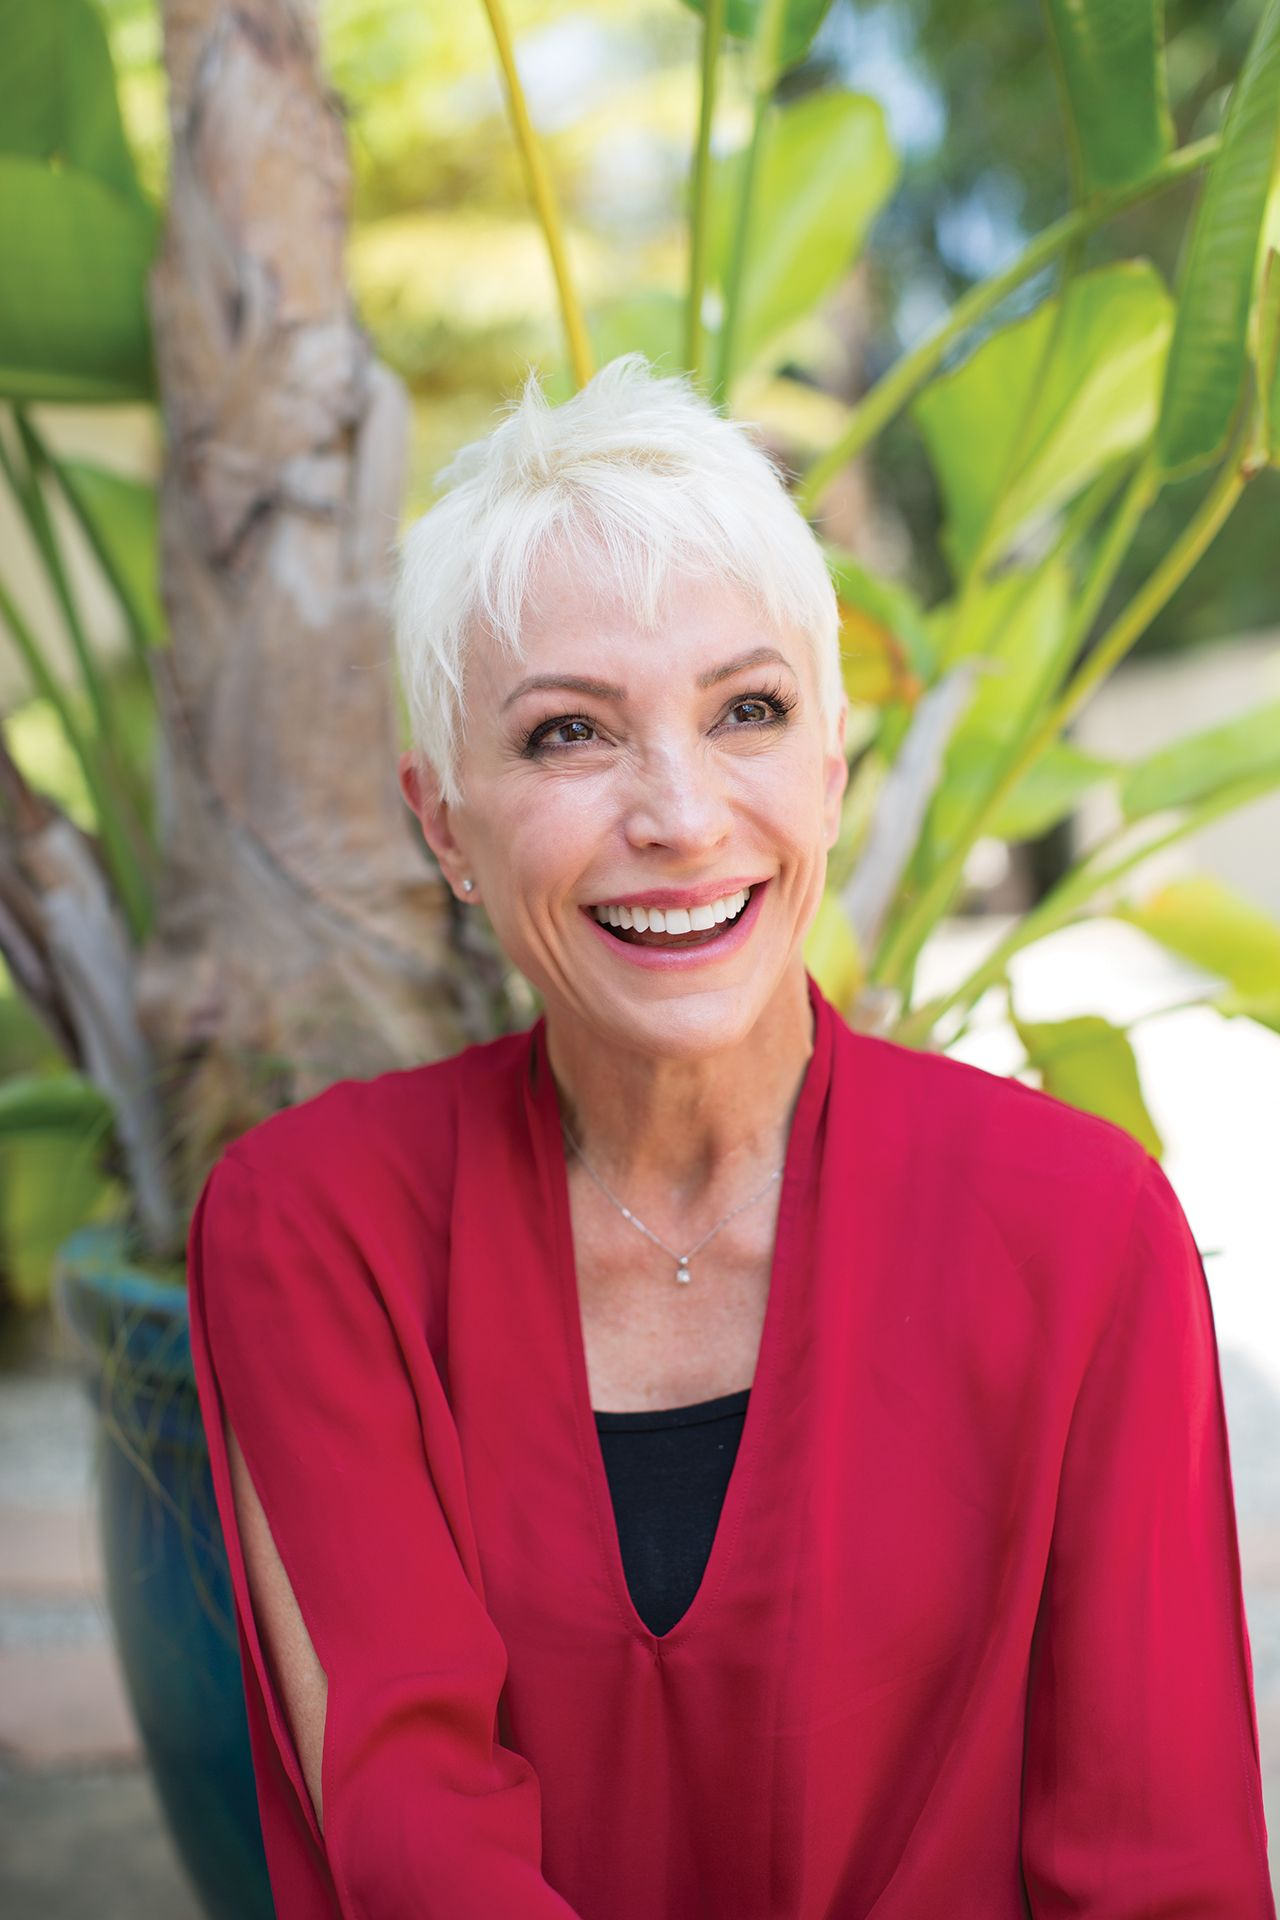 Nana Visitor Photoshoot For Mindful Magazine